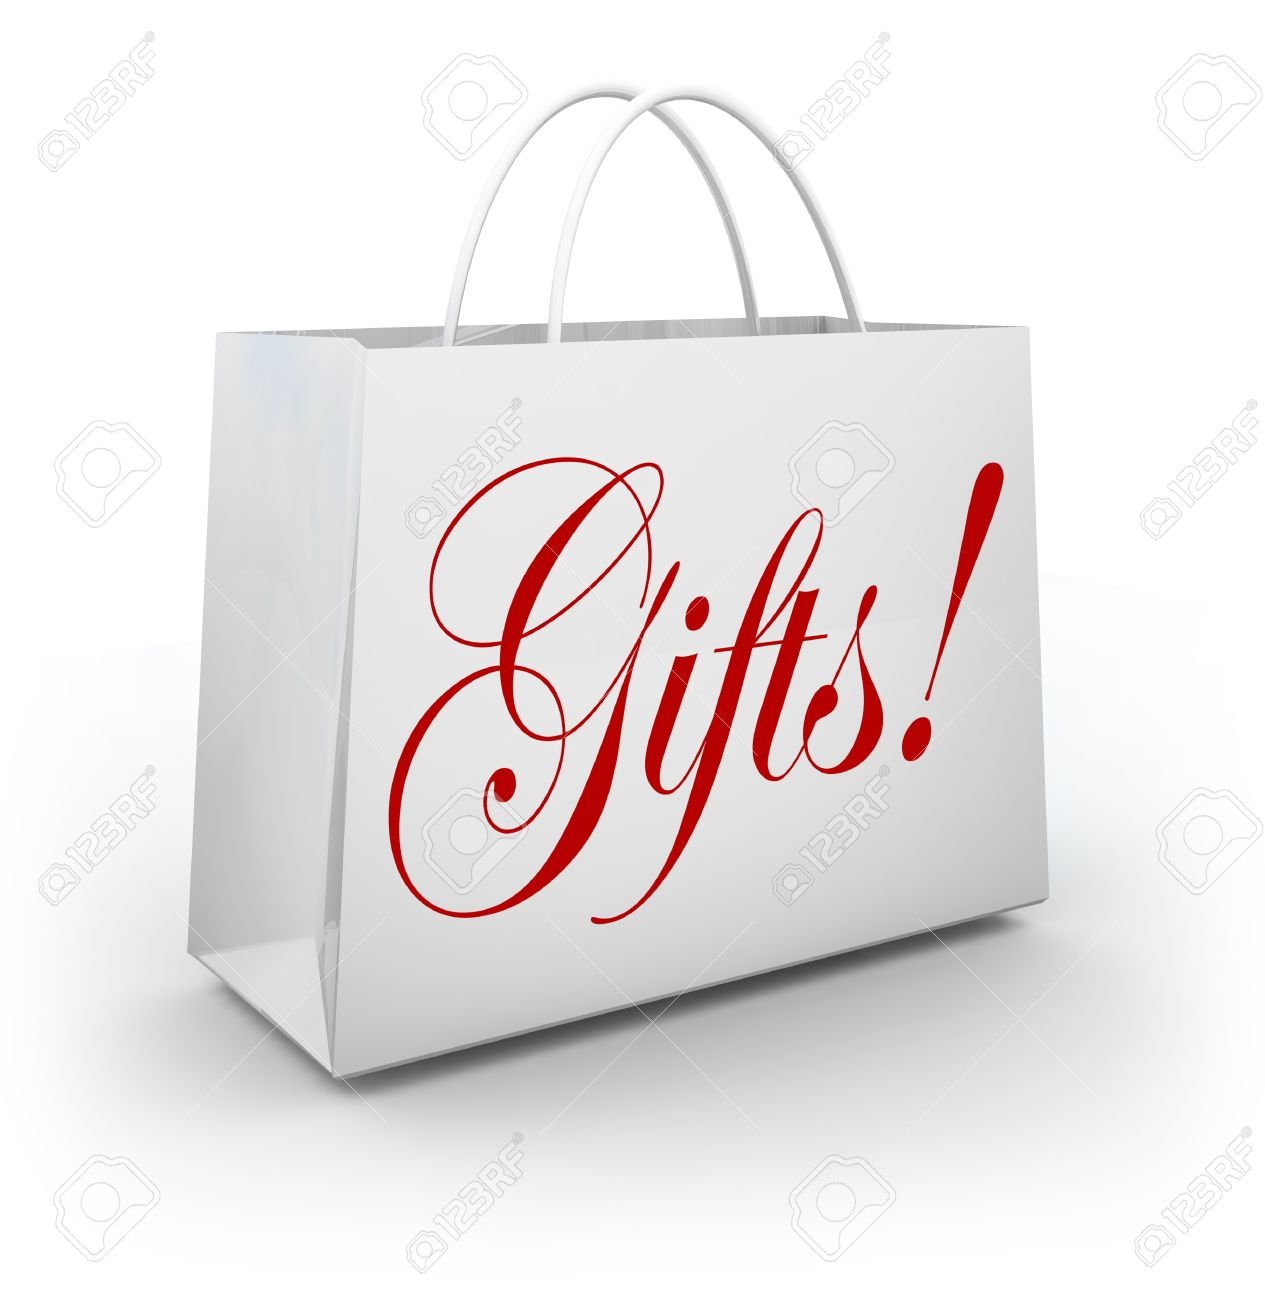 the word gifts on a paper shopping bag from an upscale store stock